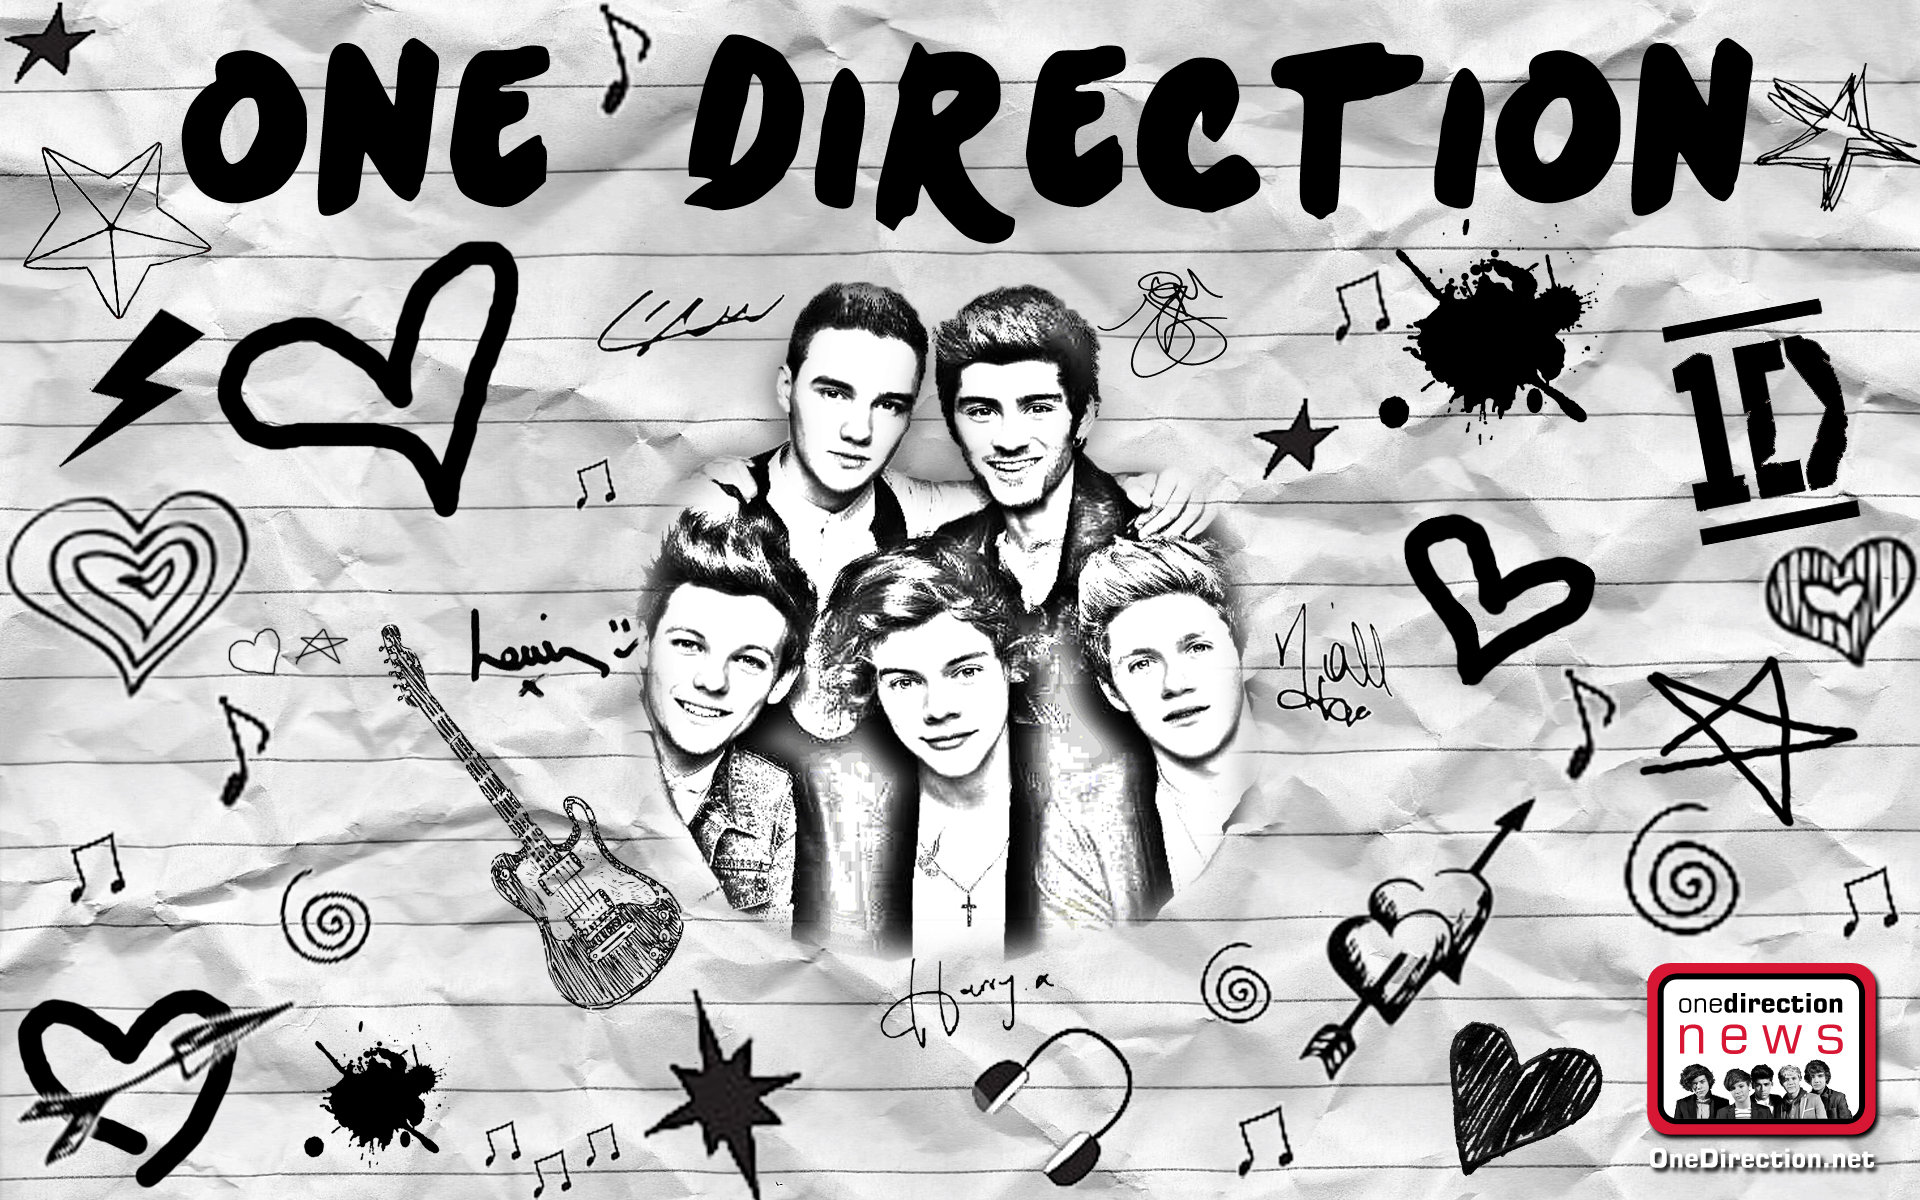 One direction background pictures impremedia one direction pictures wallpapers source 1024 x 768 1152 x 864 1280 x 800 1280 x 1024 1440 x 900 1920 voltagebd Choice Image